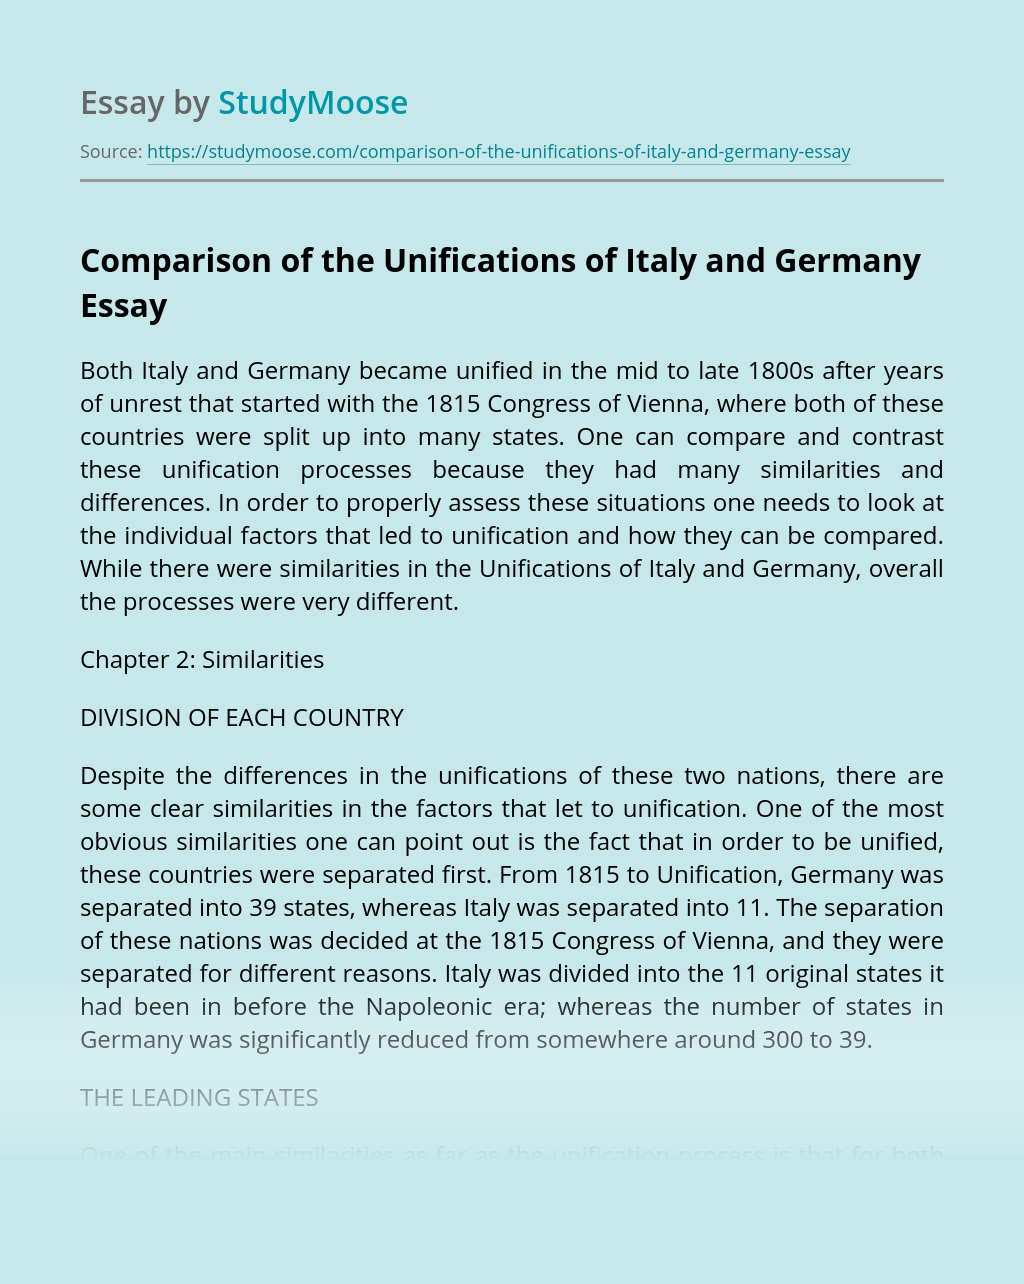 Comparison of the Unifications of Italy and Germany